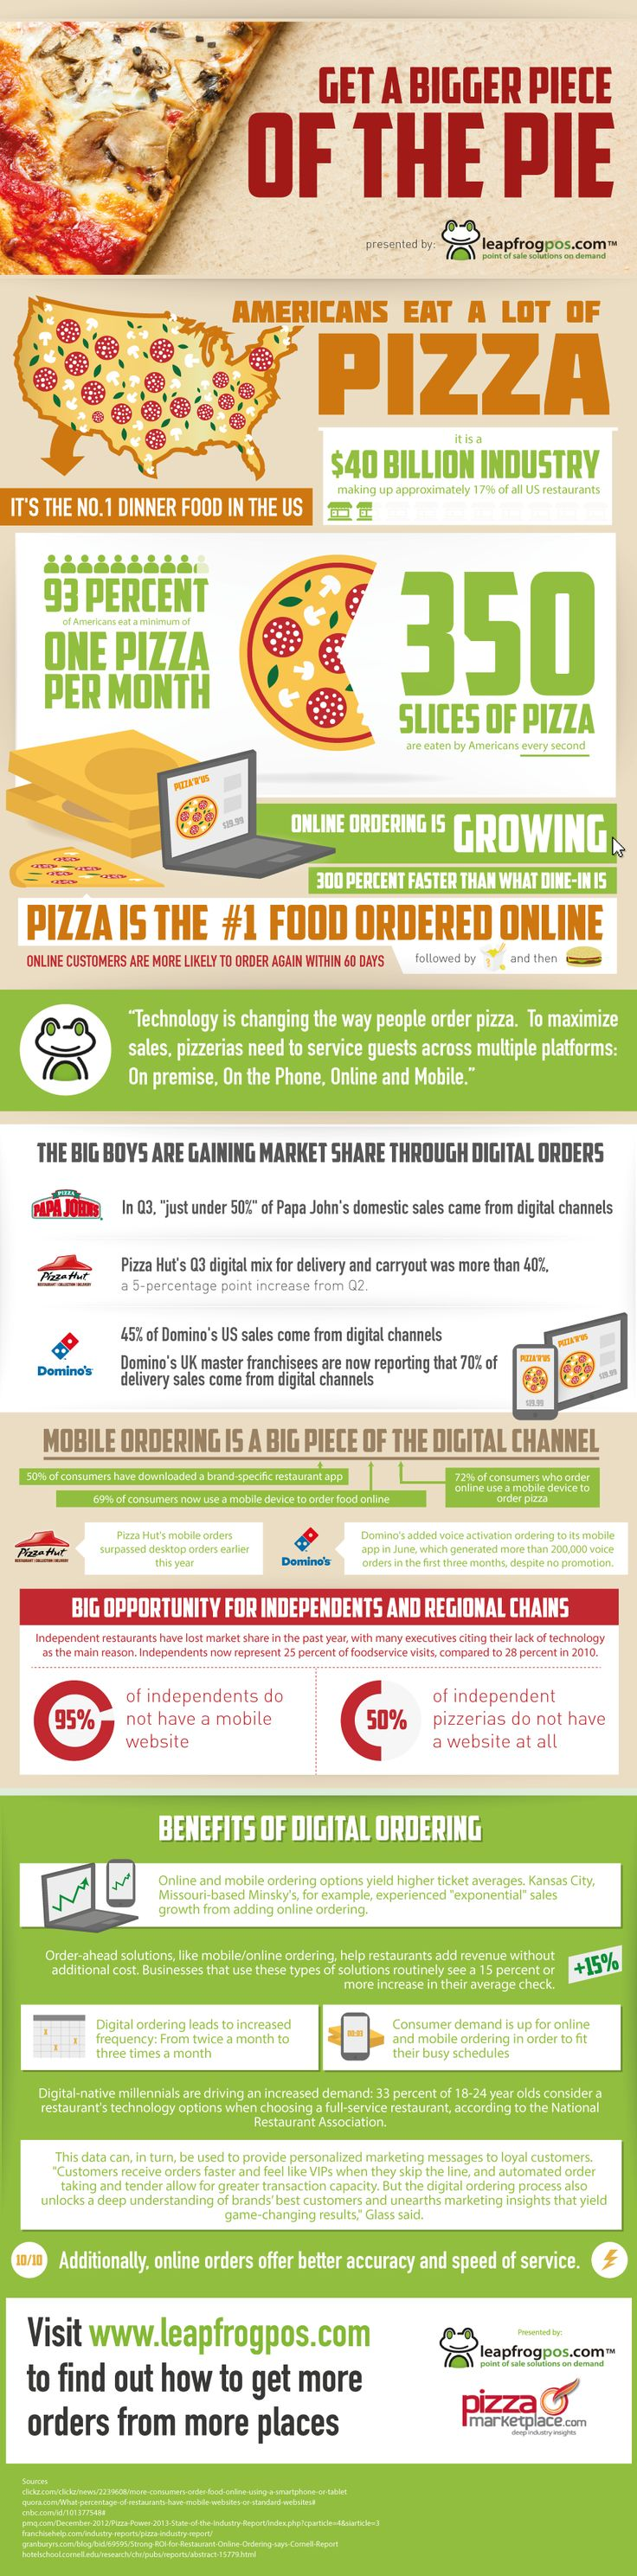 Get a Bigger Piece of the Pie #infographic #Pizza #Food